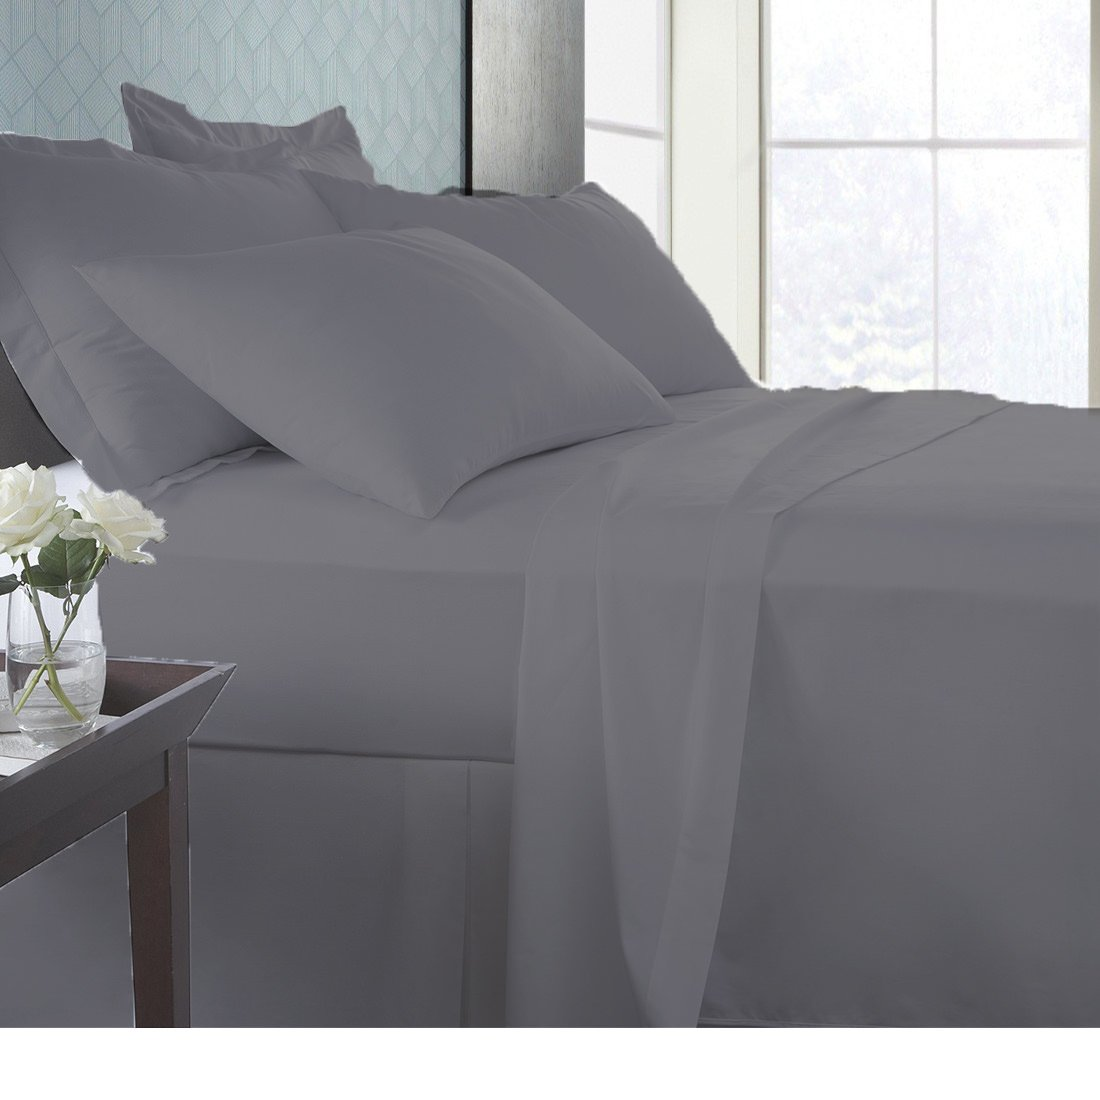 AMERICA BEDDING 100% Premium HOTEL LIKE Quality Soft EGYPTIAN Cotton Fade-Resistant ITALIAN FINISH MADE IN USA Sheet Set 600 TC Fits Up to 24 Inches Deep Pocket Solid (Queen, Elephant Grey)